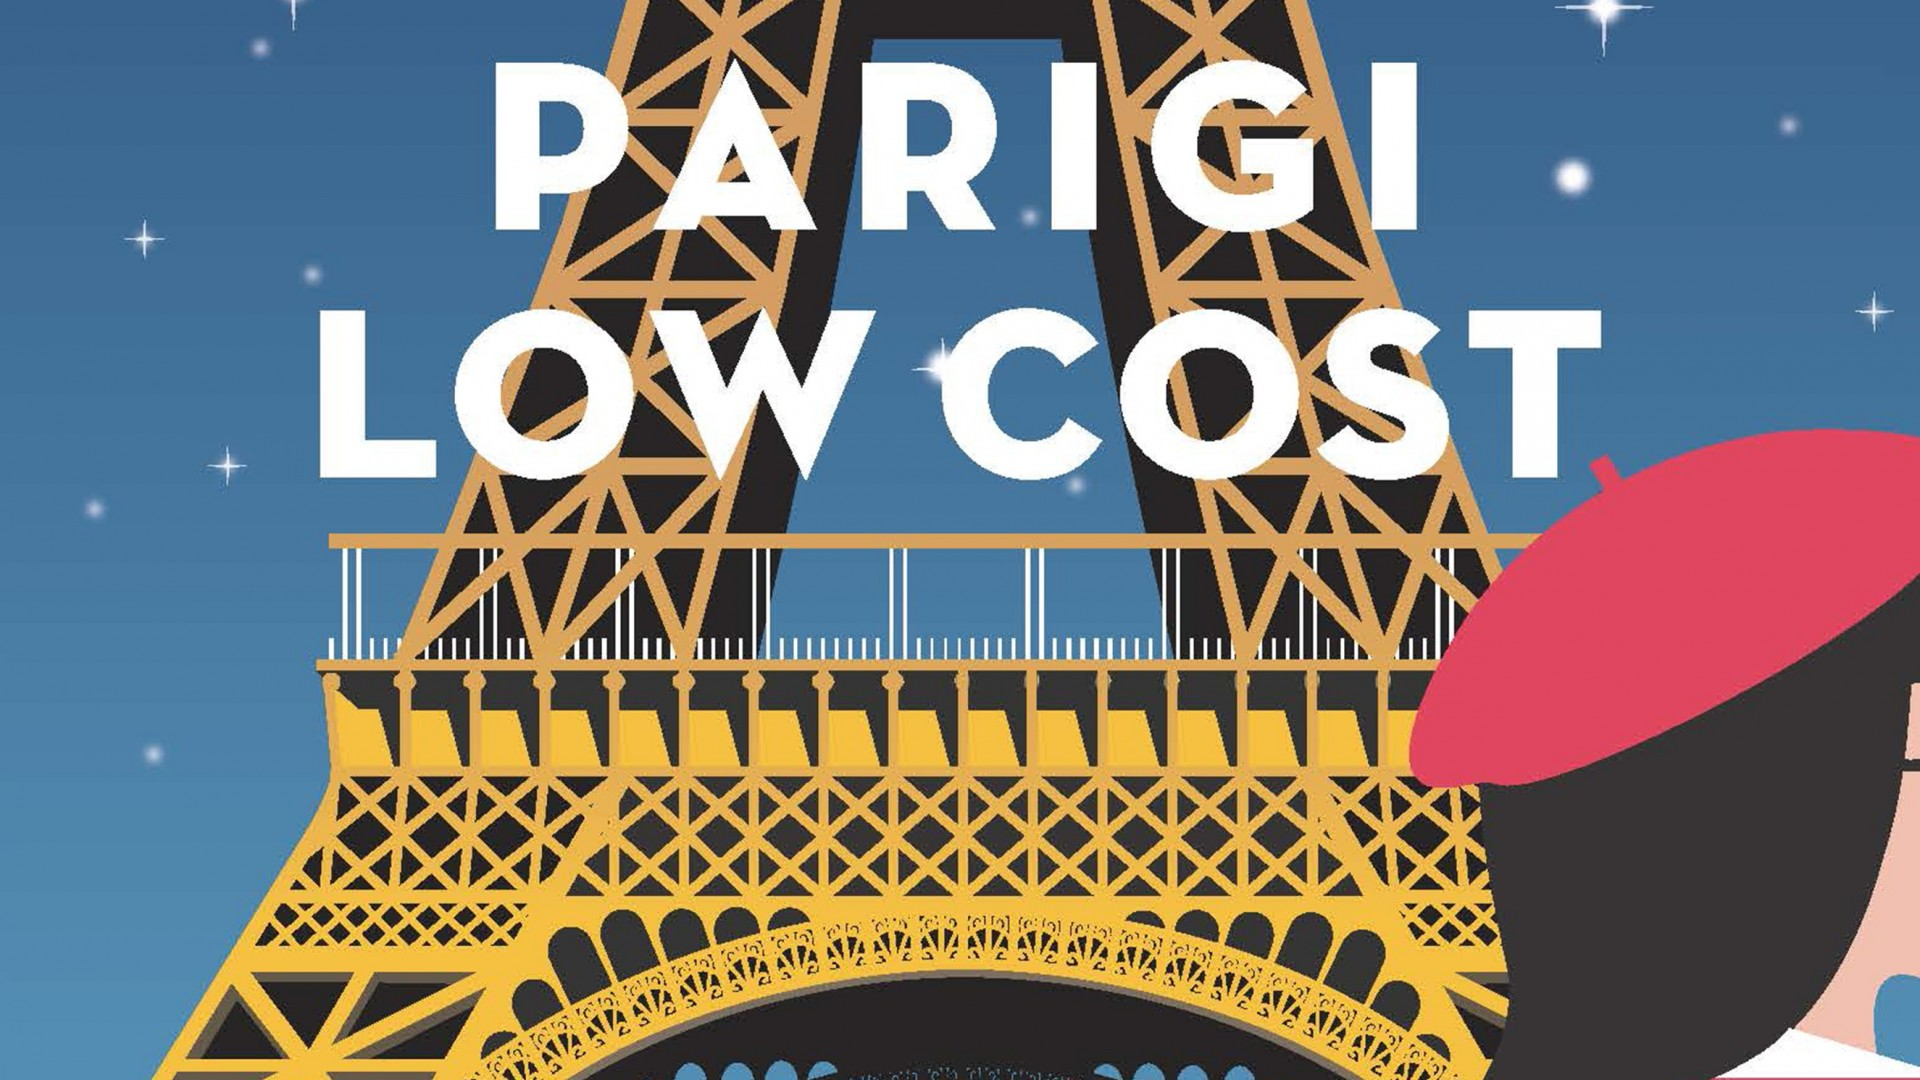 parigi low cost - elena italiani